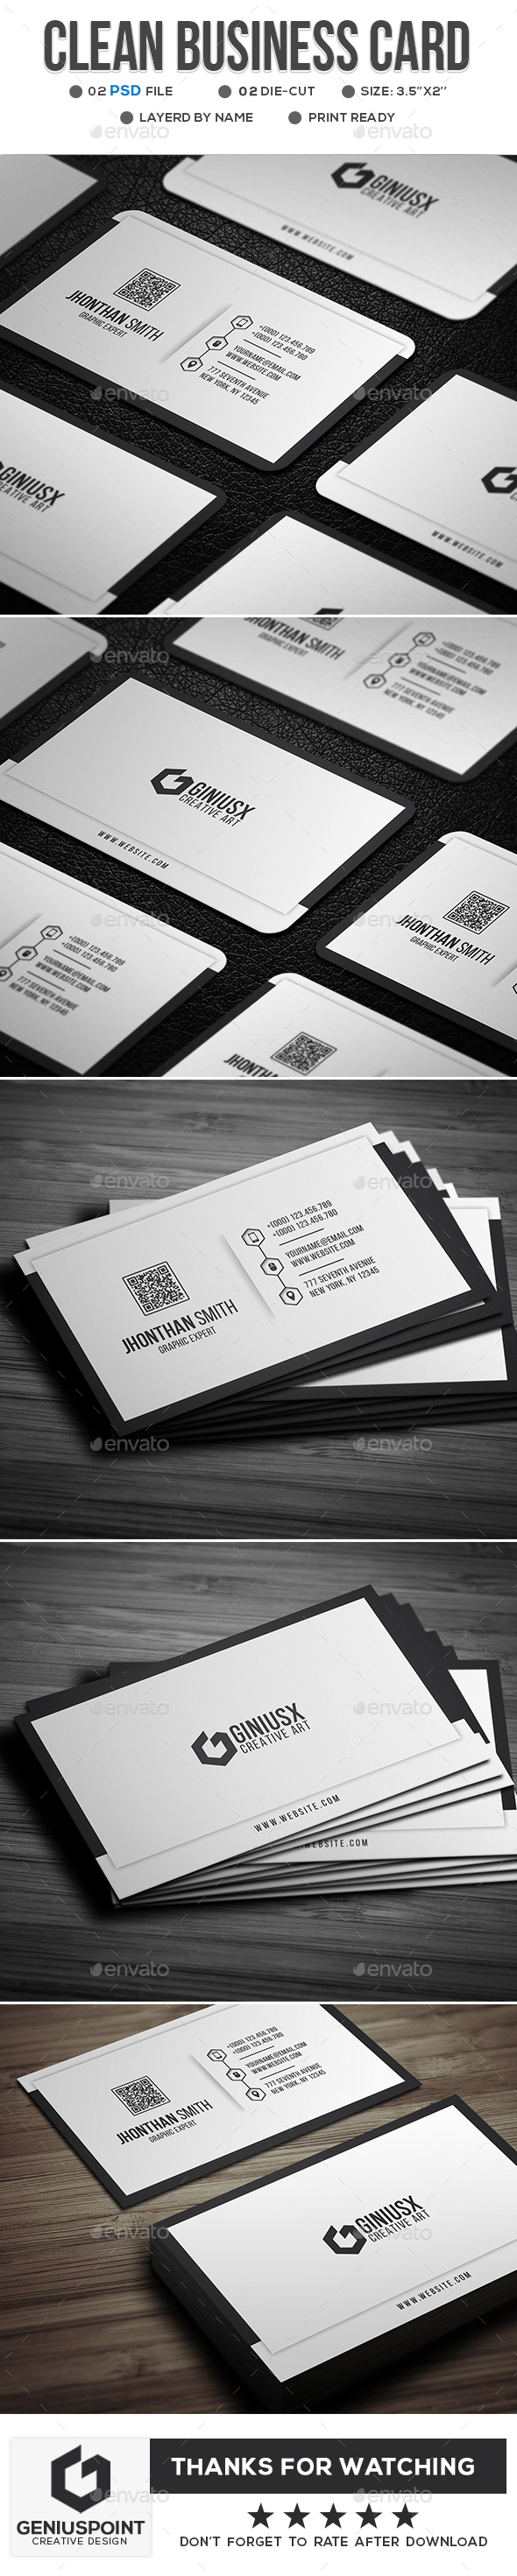 Clean Business Card - Corporate Business Cards